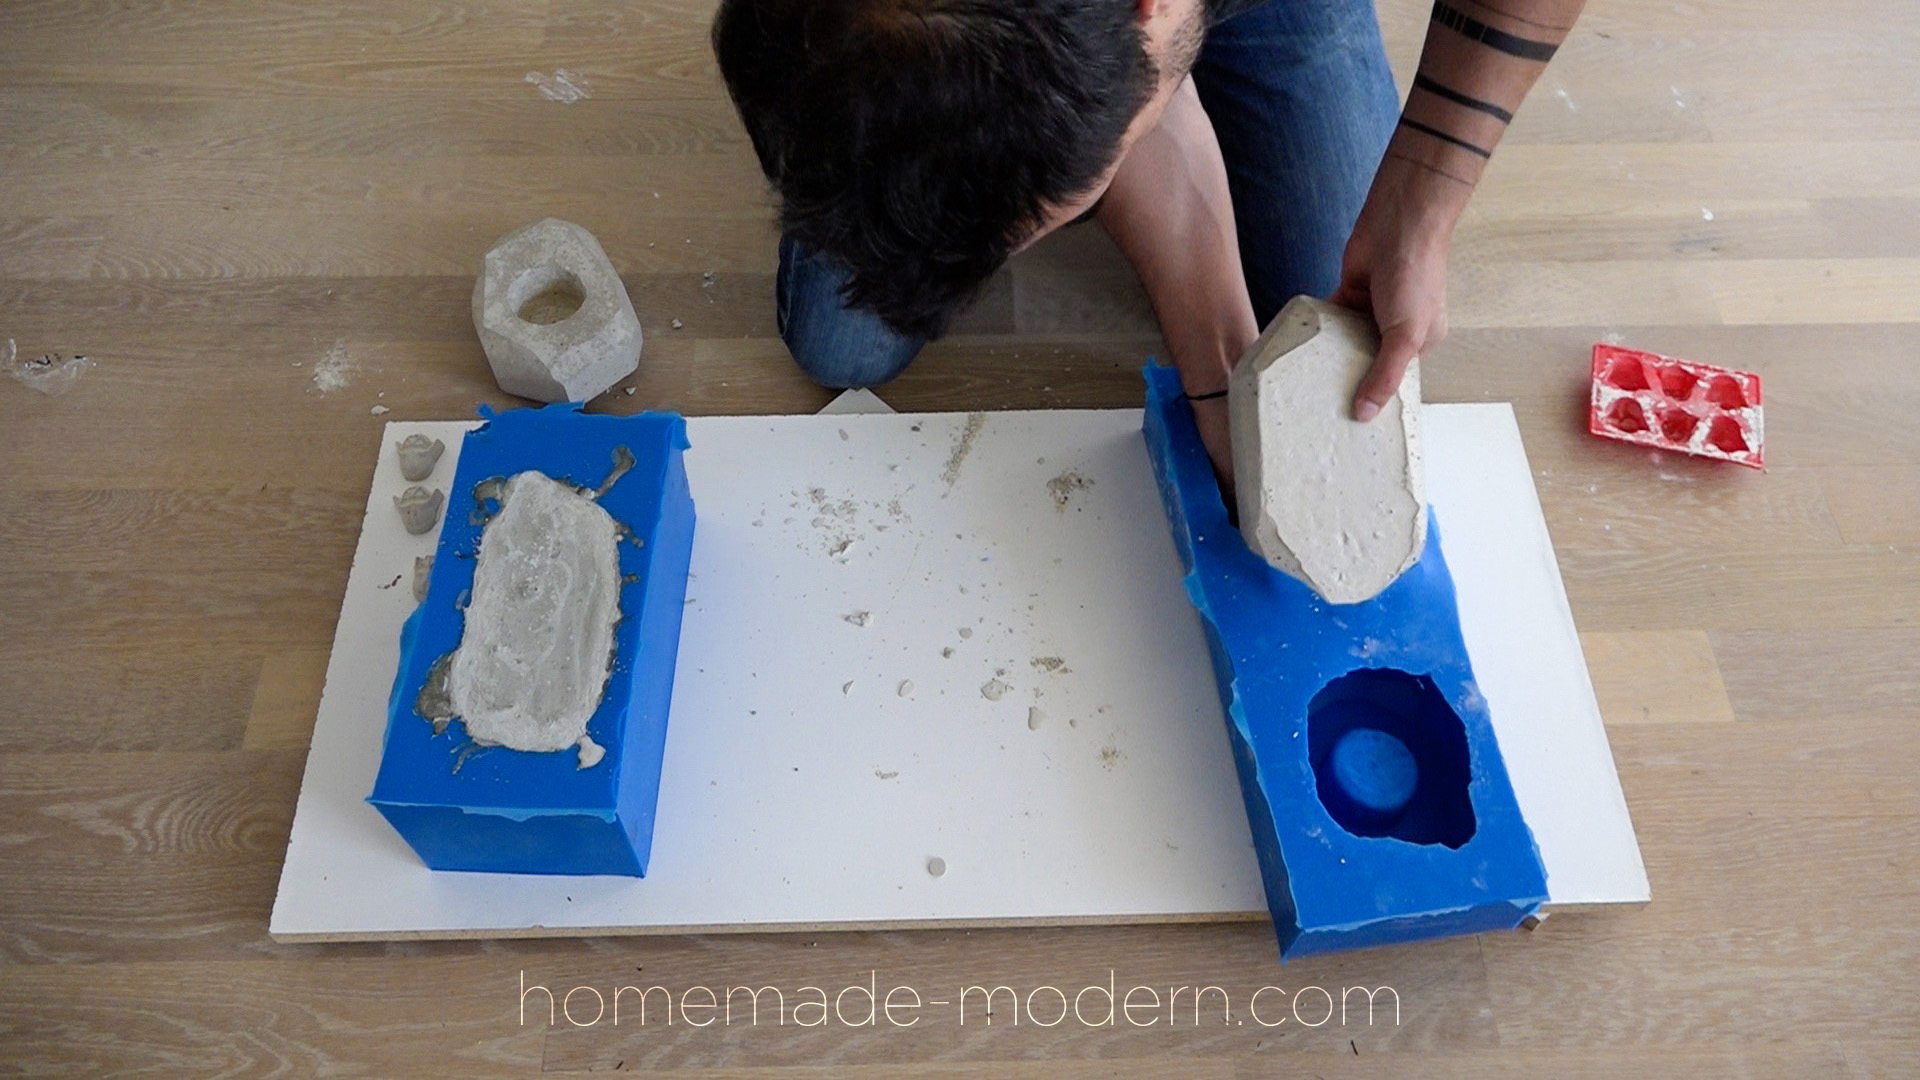 These geometric planters were cast out of concrete using reusable molds made out of silicone. For more information on this project and on DIY concrete countertops go to HomeMade-Modern.com